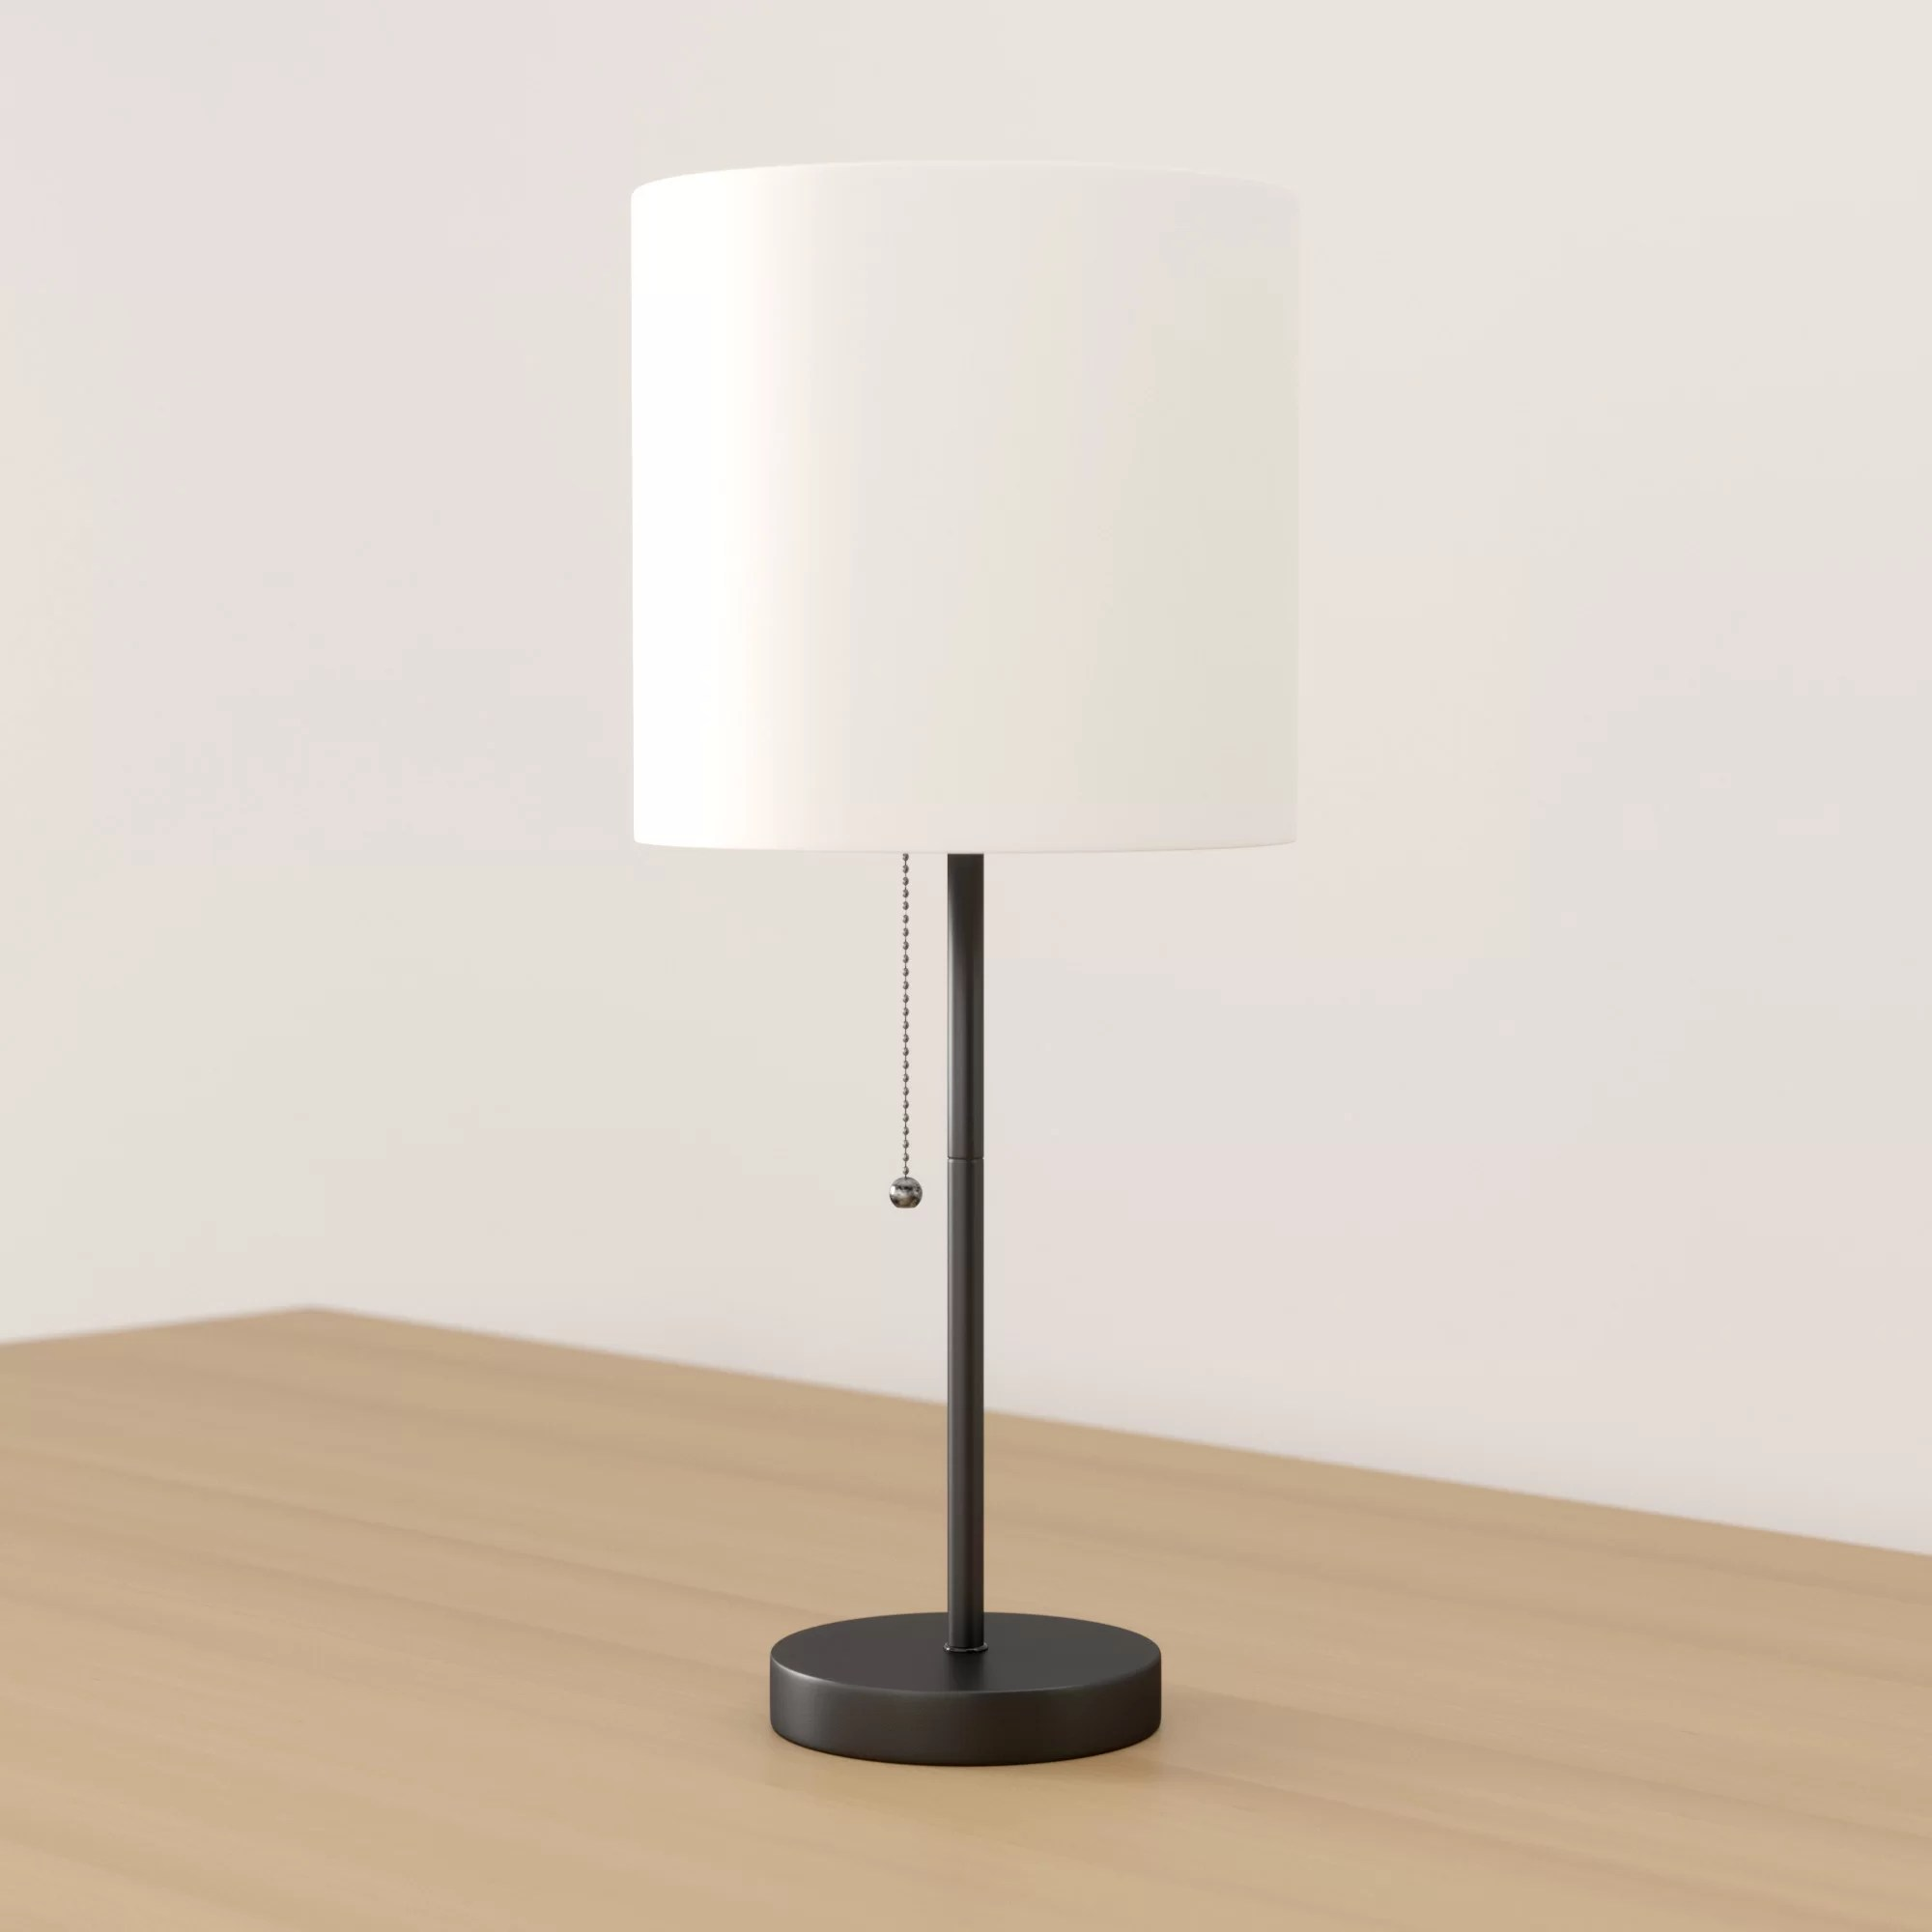 Bedside Lamps Free Shipping Over 35 Wayfair